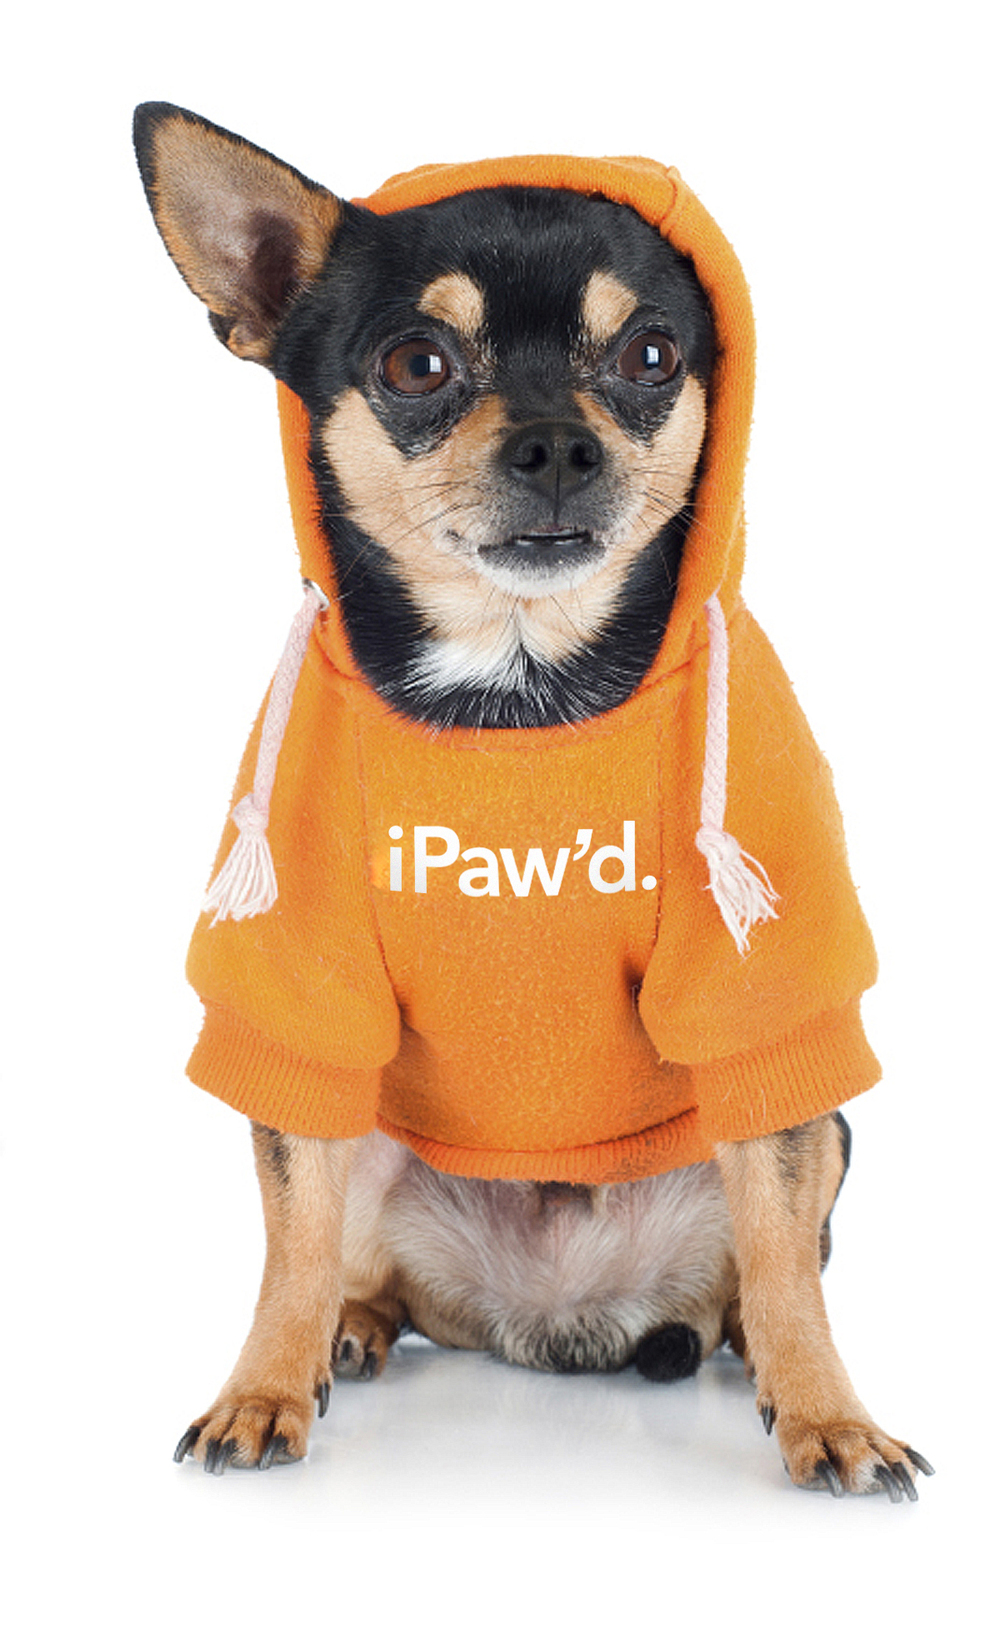 pet_cooldog_24135857_ipawd.jpg